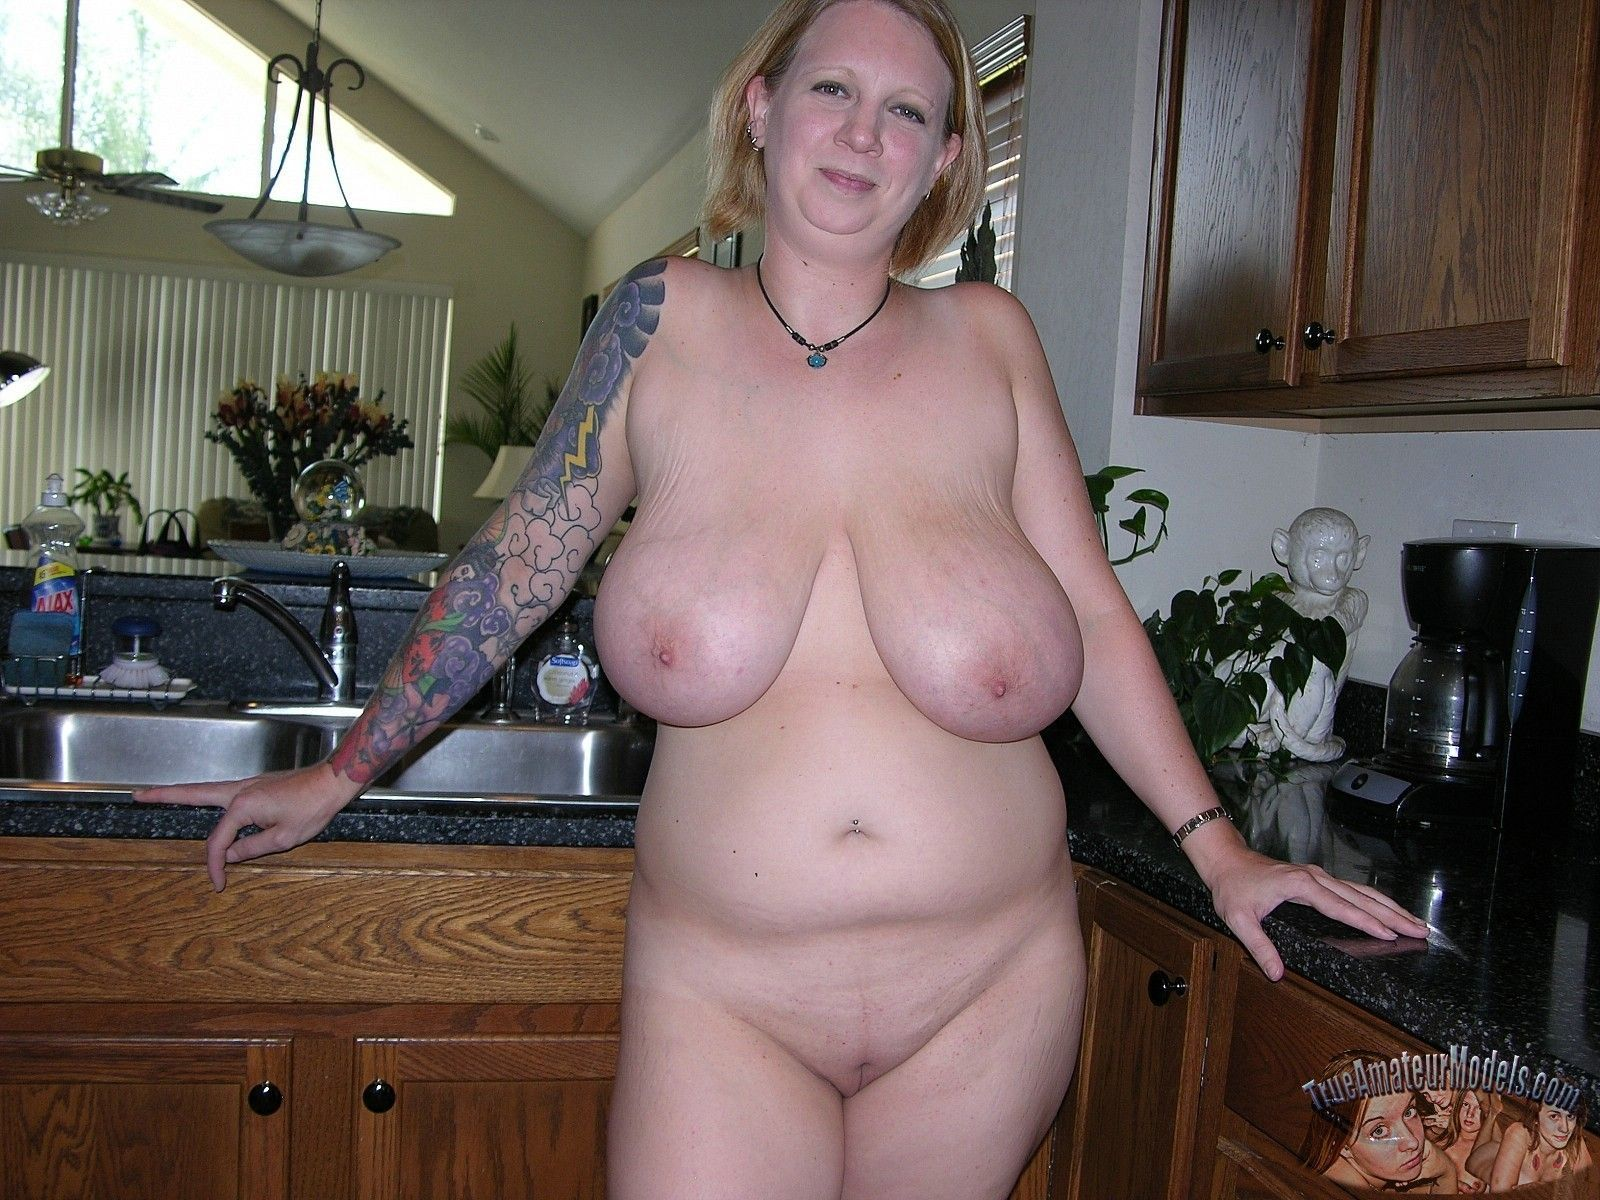 Bbw nude amatuer photos